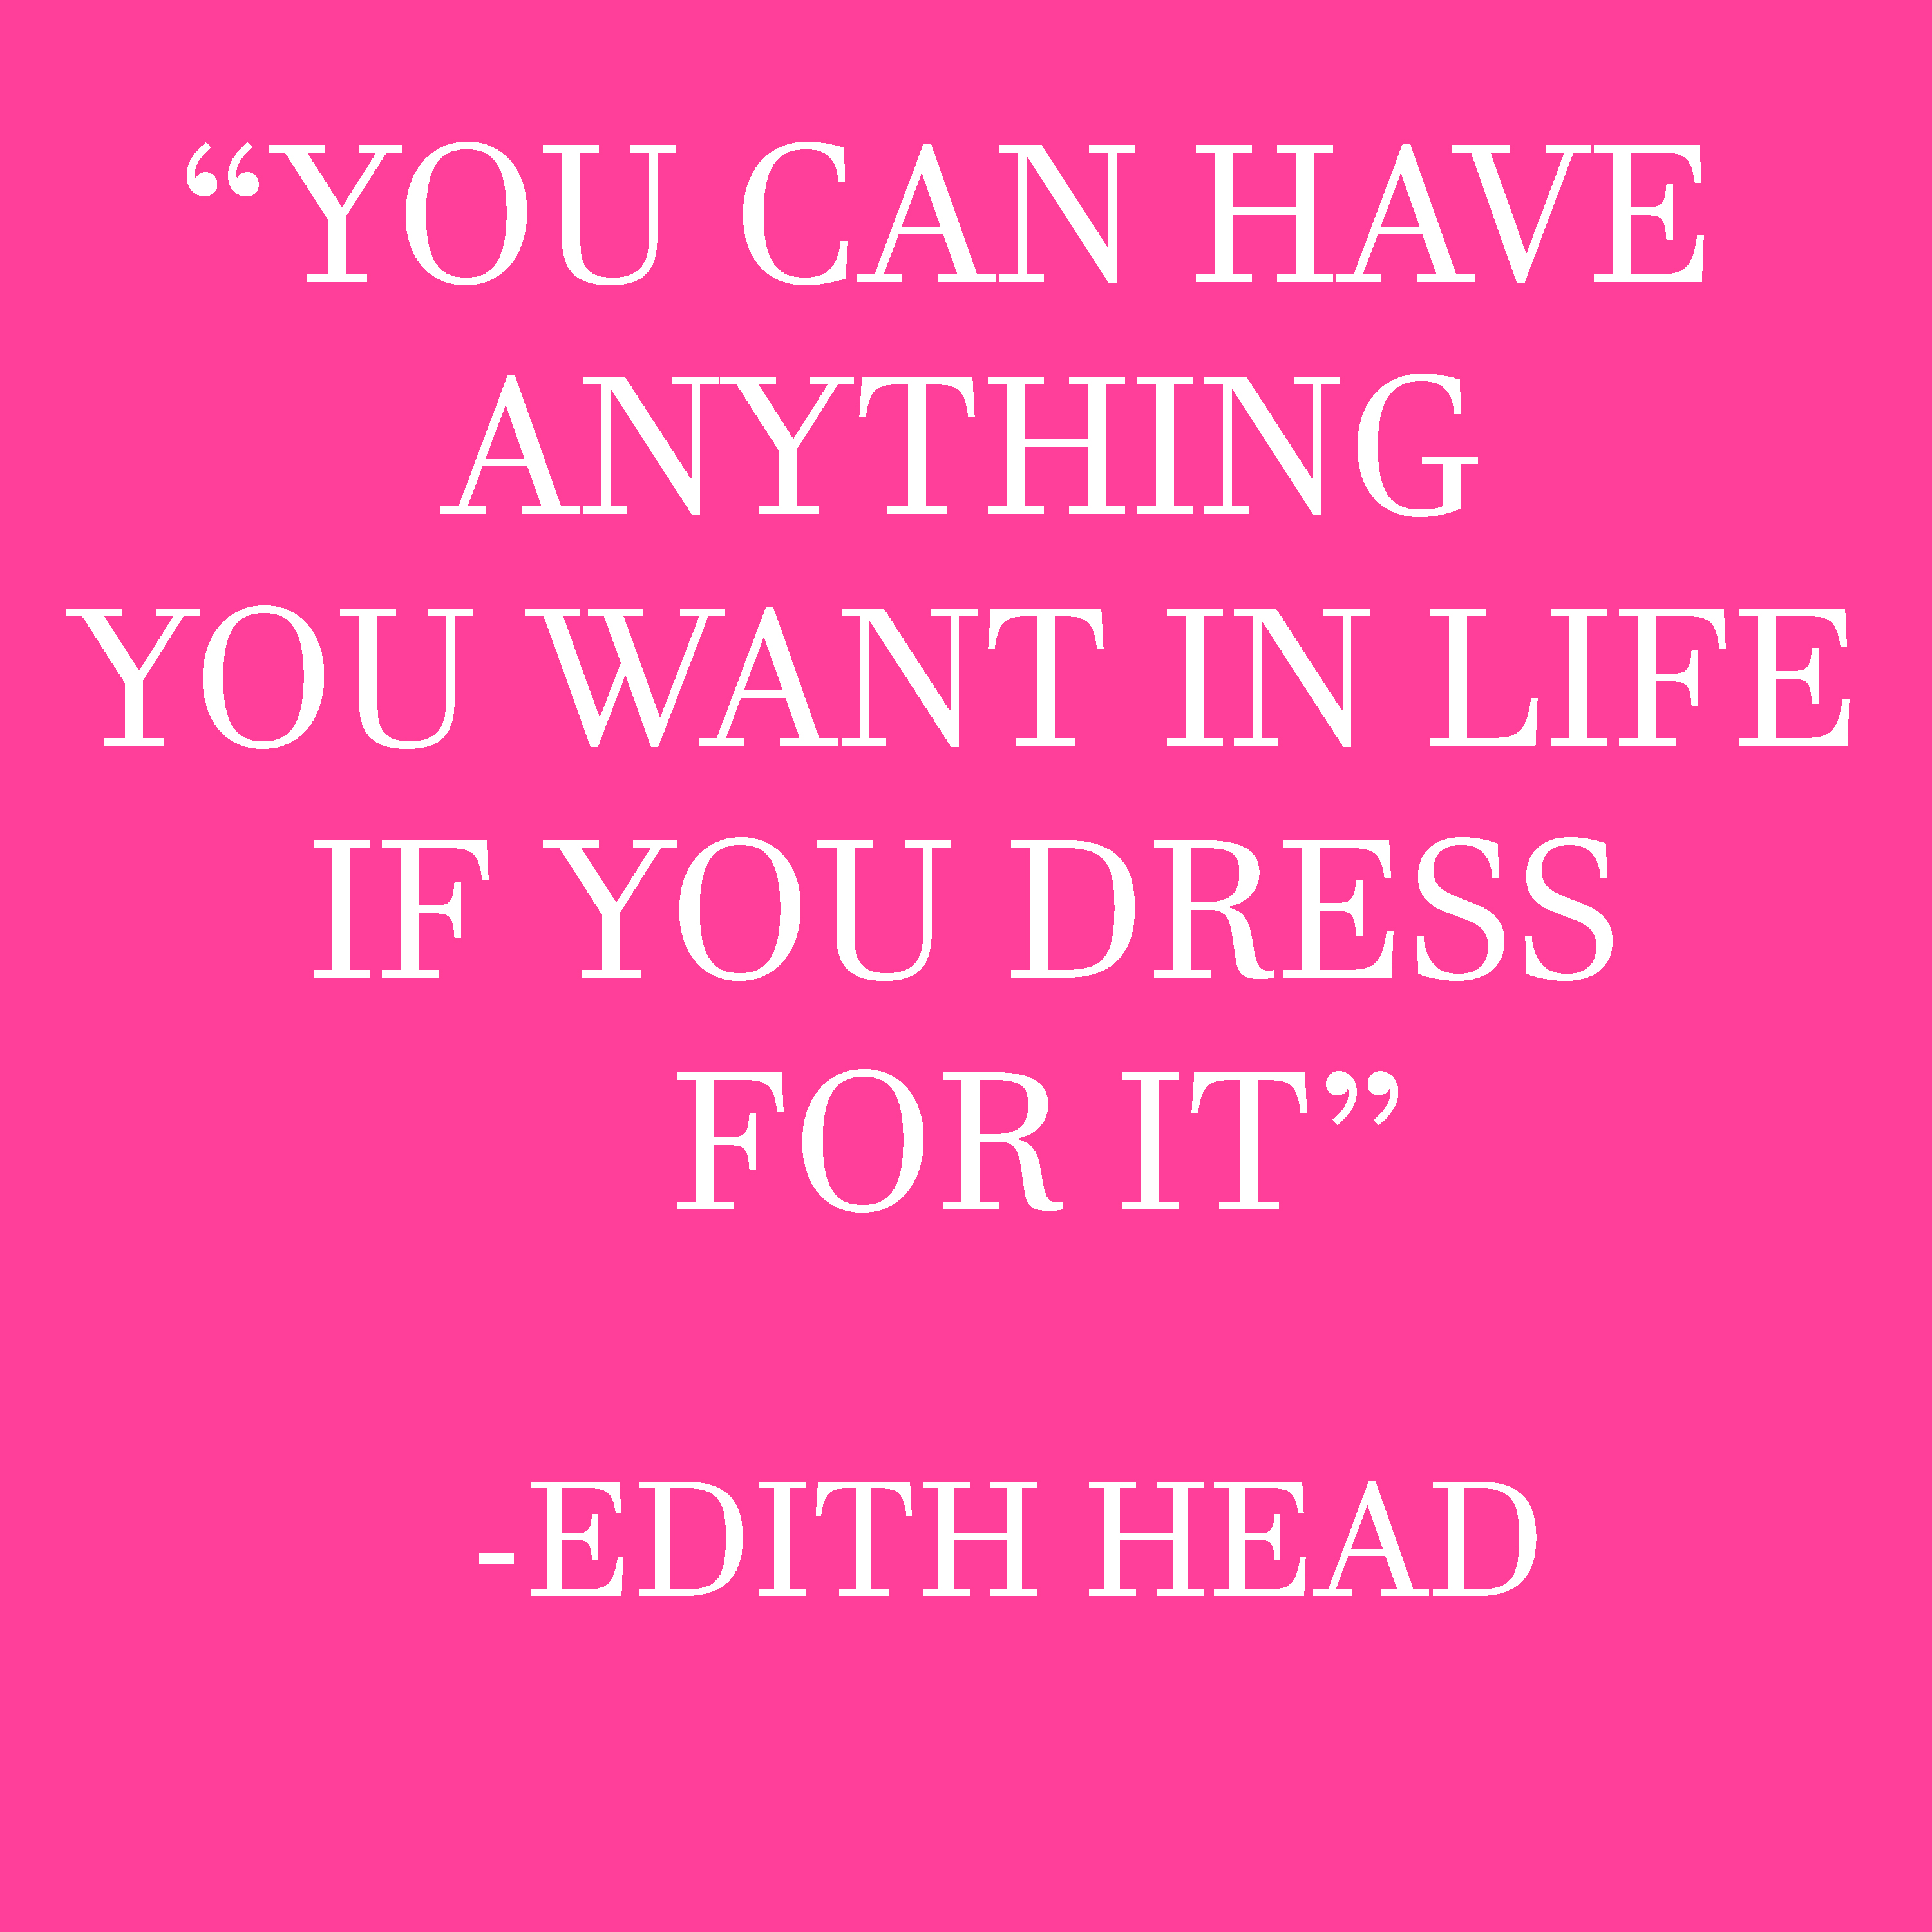 EDITH HEAD QUOTE